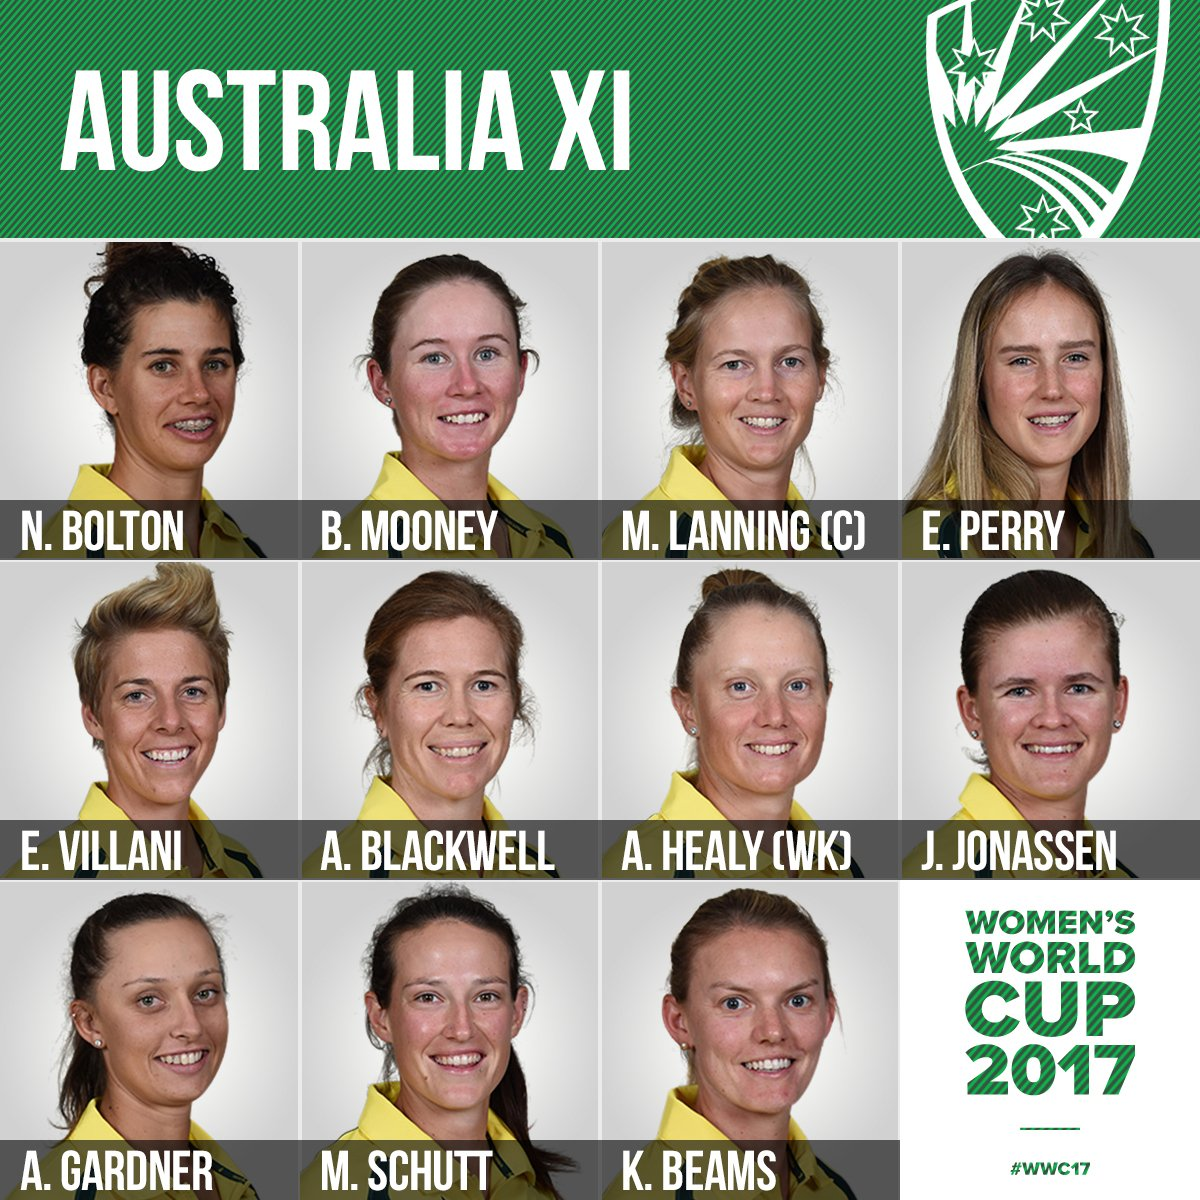 Here's the Aussie XI for the #WWC17 opener! #AUSvWI https://t.co/CEco8...